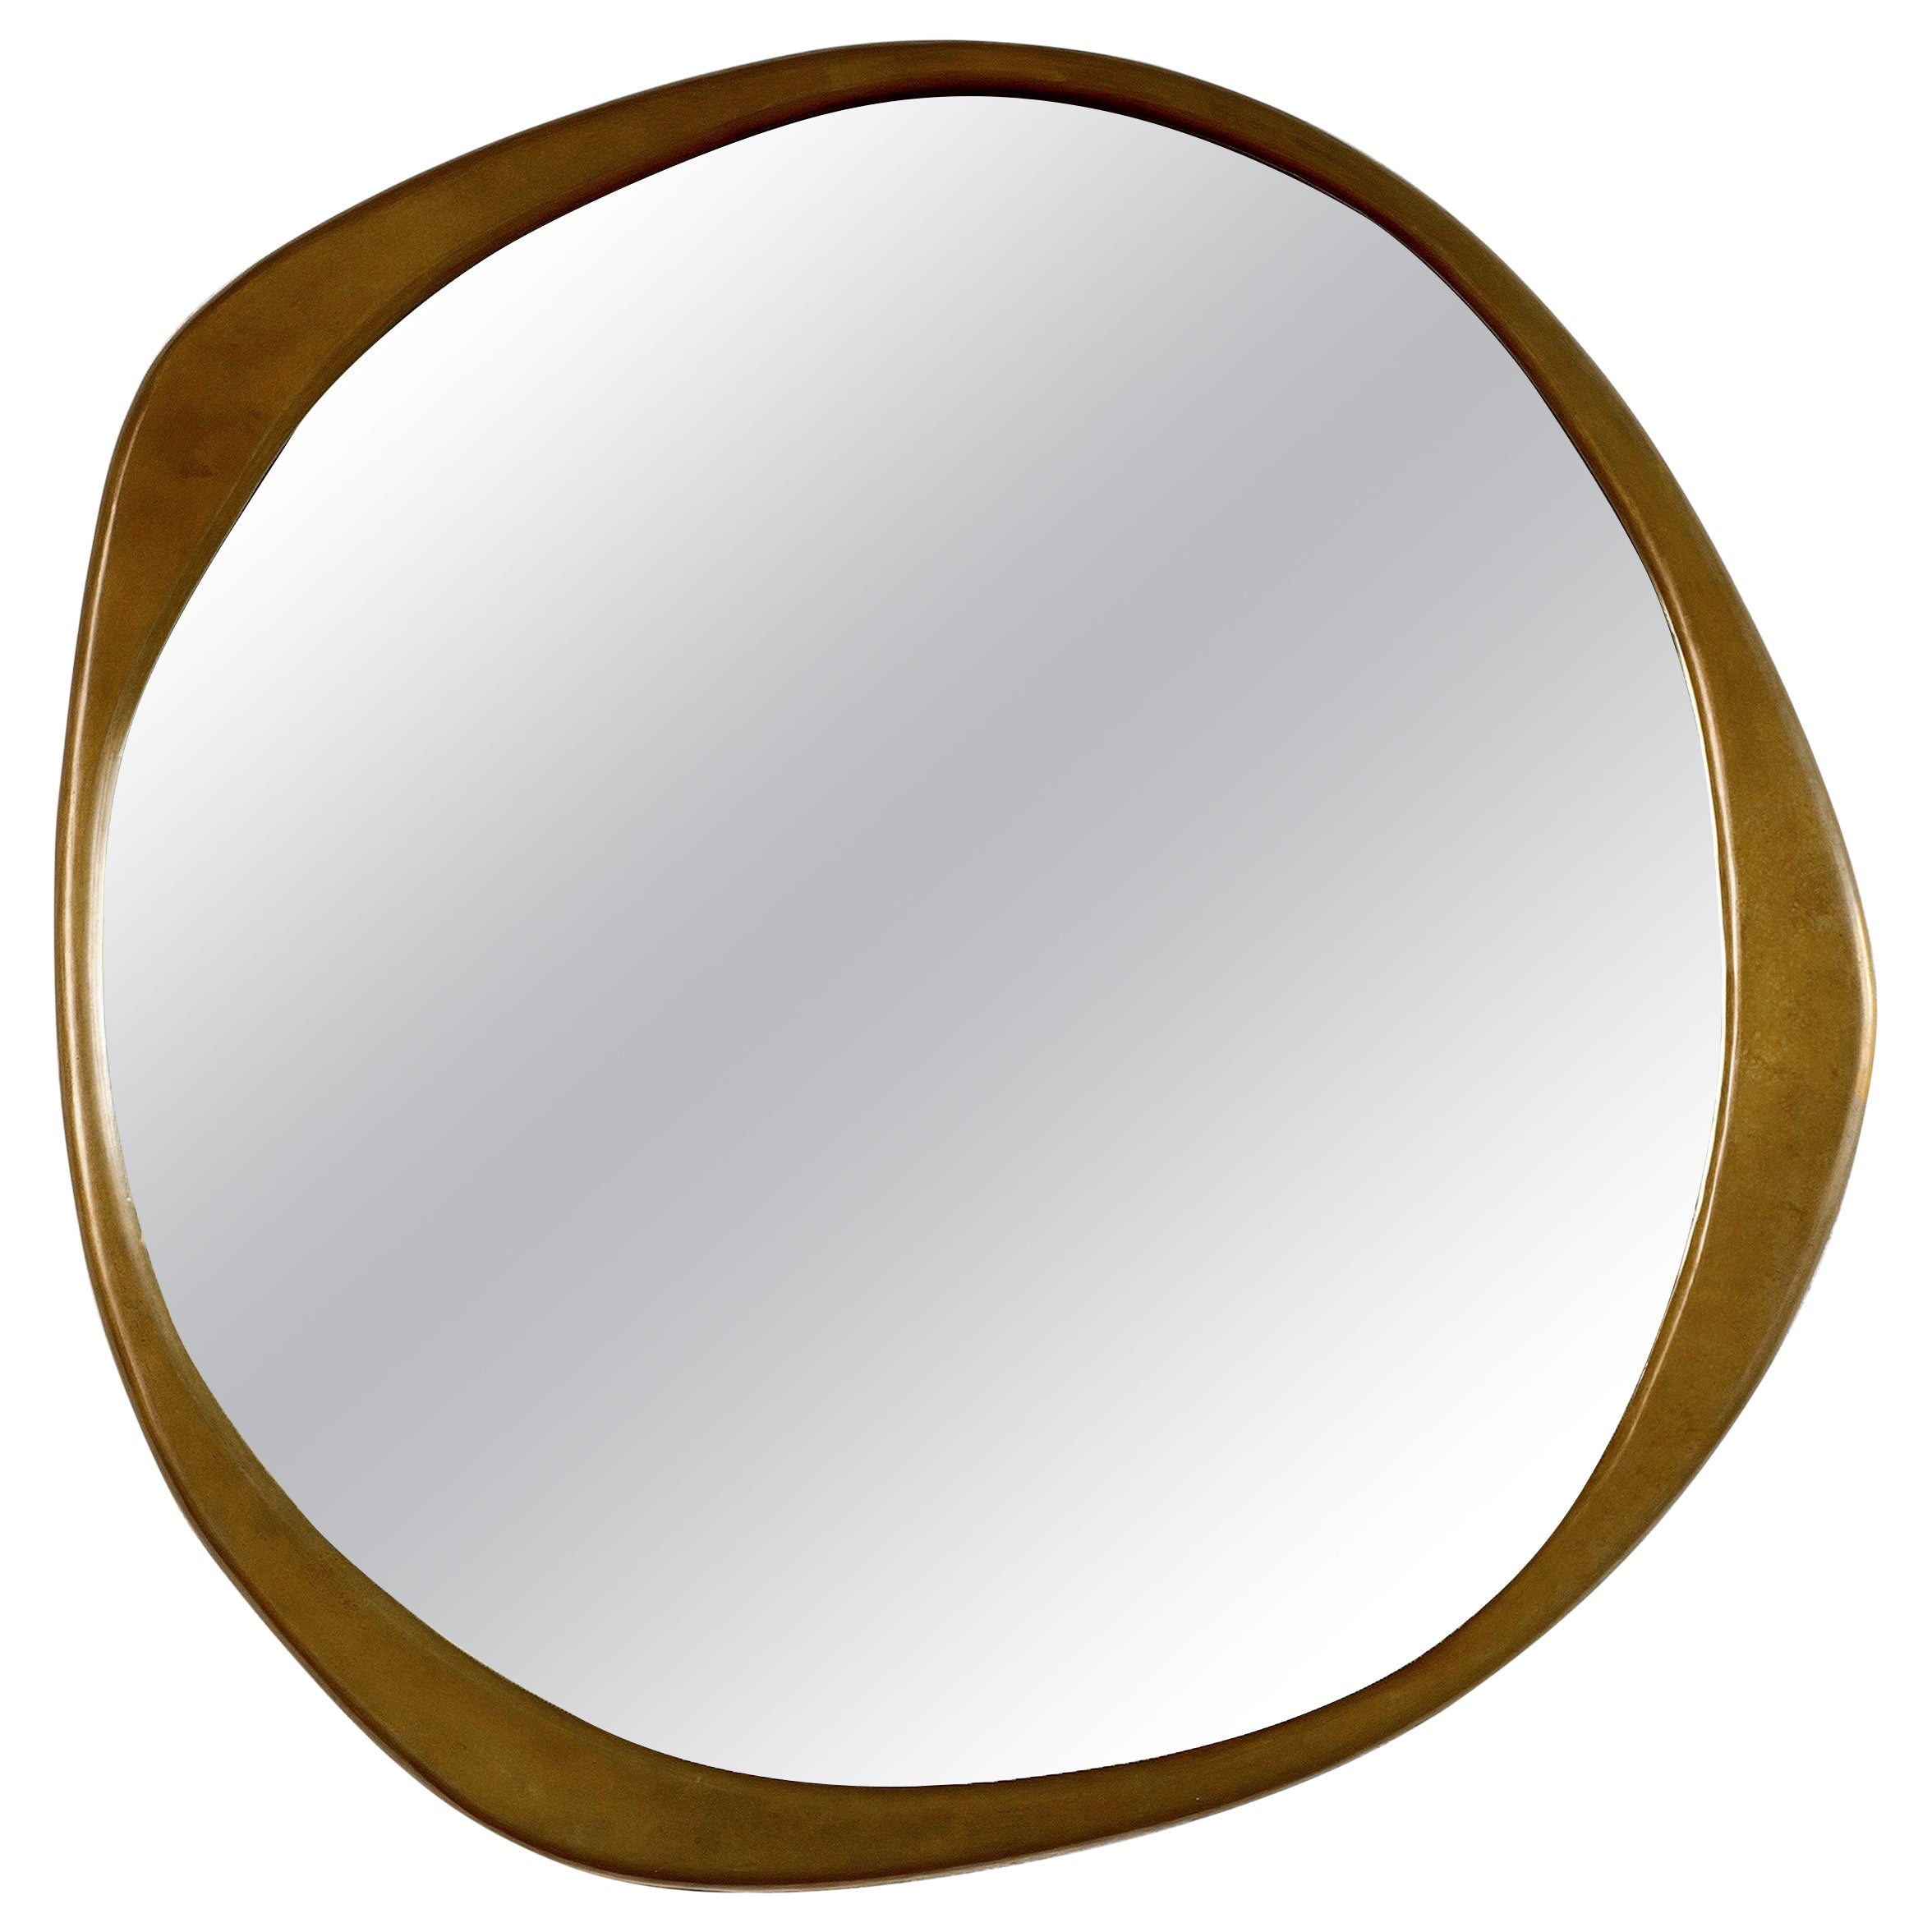 A. Cepa Wall Mirror Large in Hand-Patinated Bronze